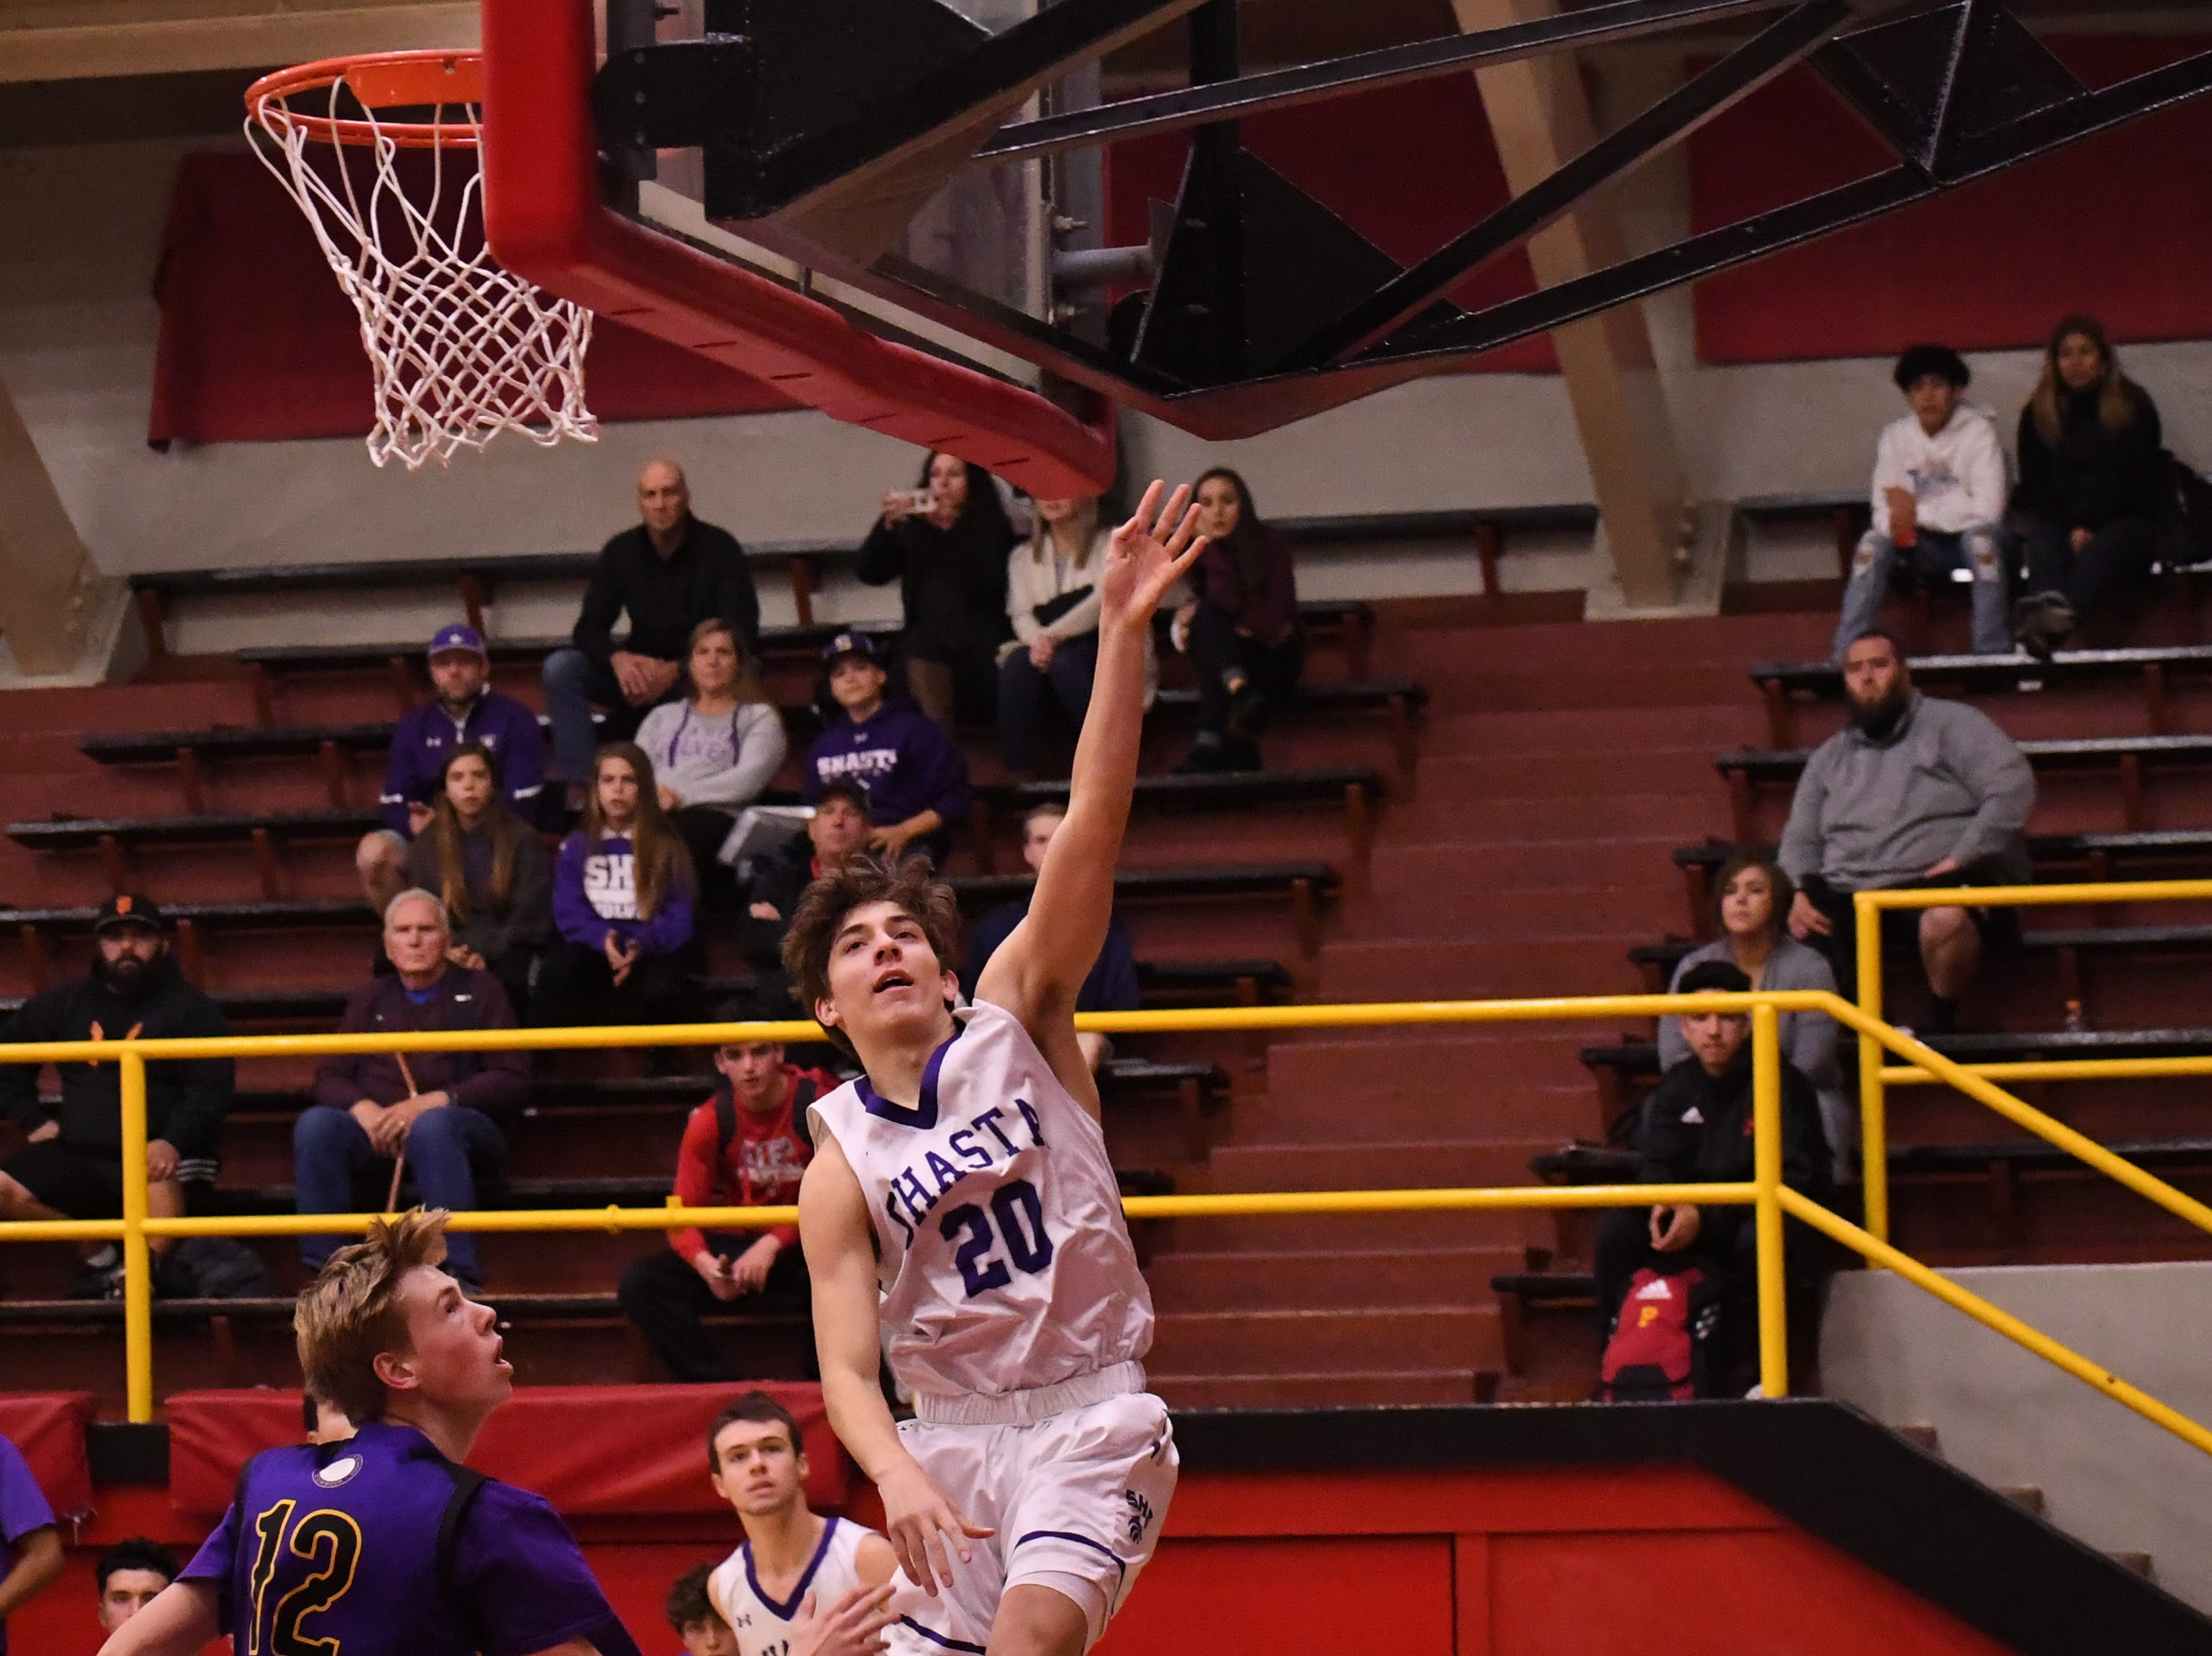 Shasta guard Caden Turner (20) falls away from the basket after scoring a layup.